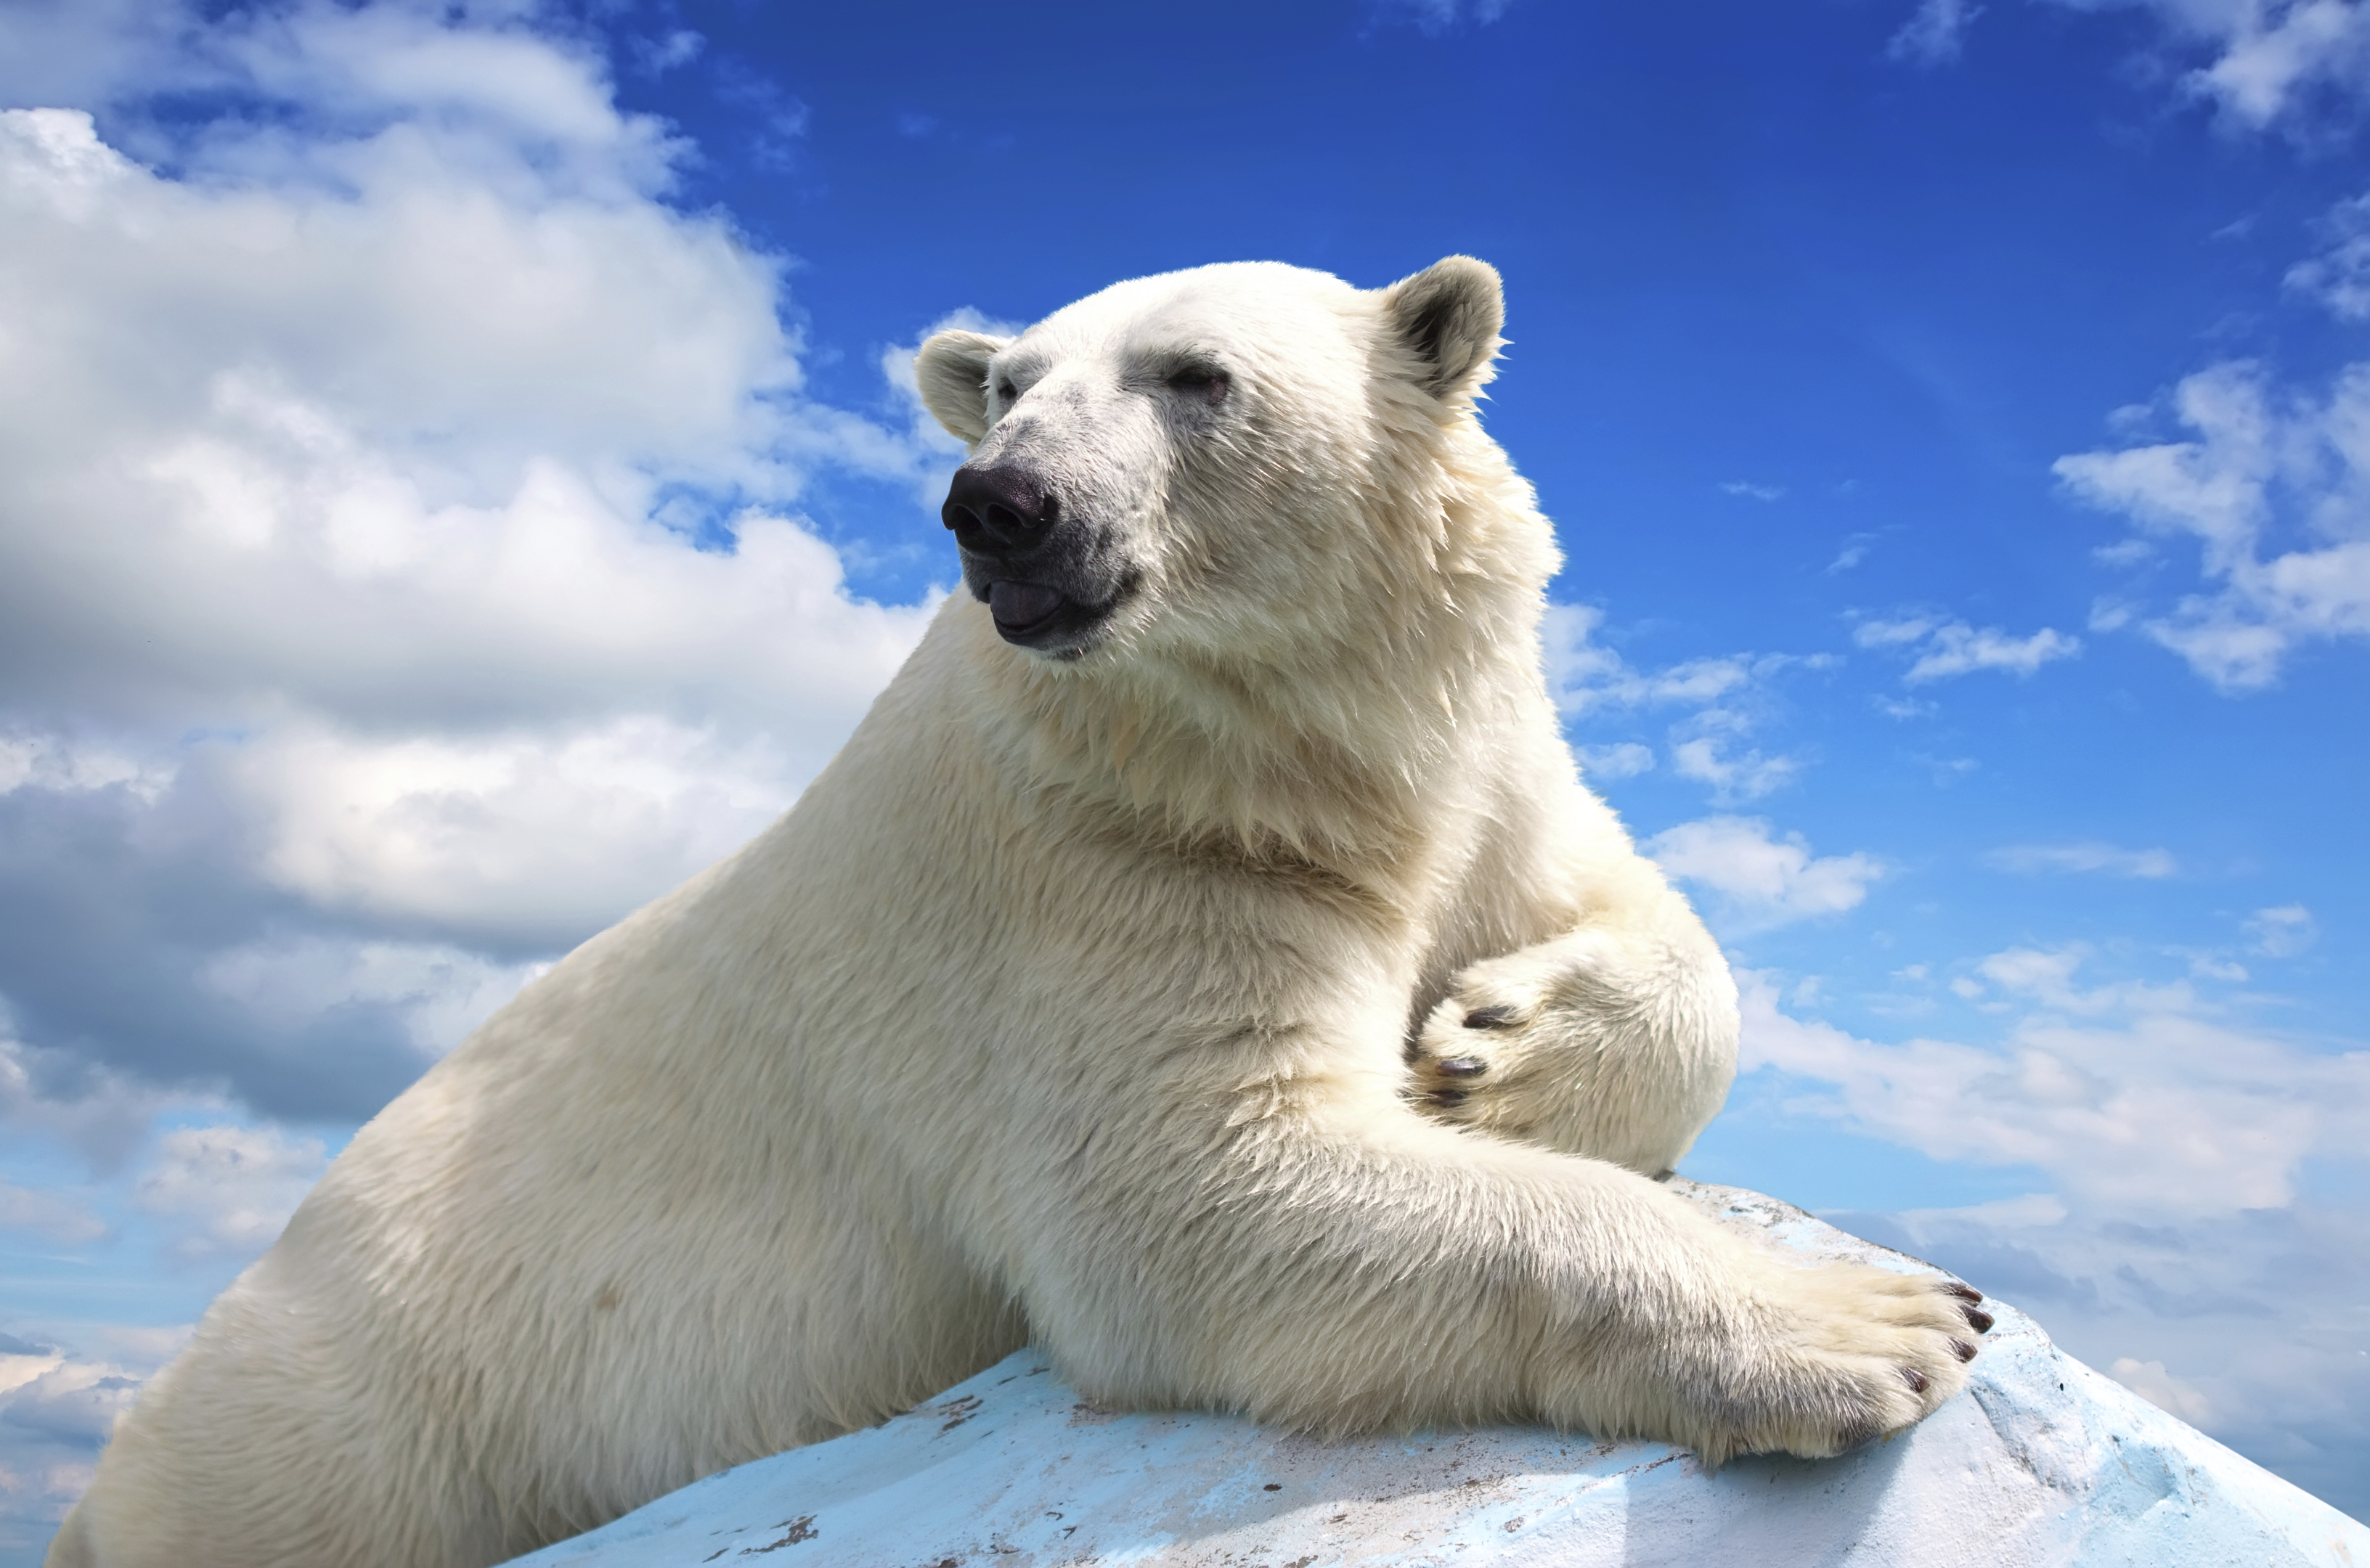 Polar bears are in peril (Iakov Filimonov)